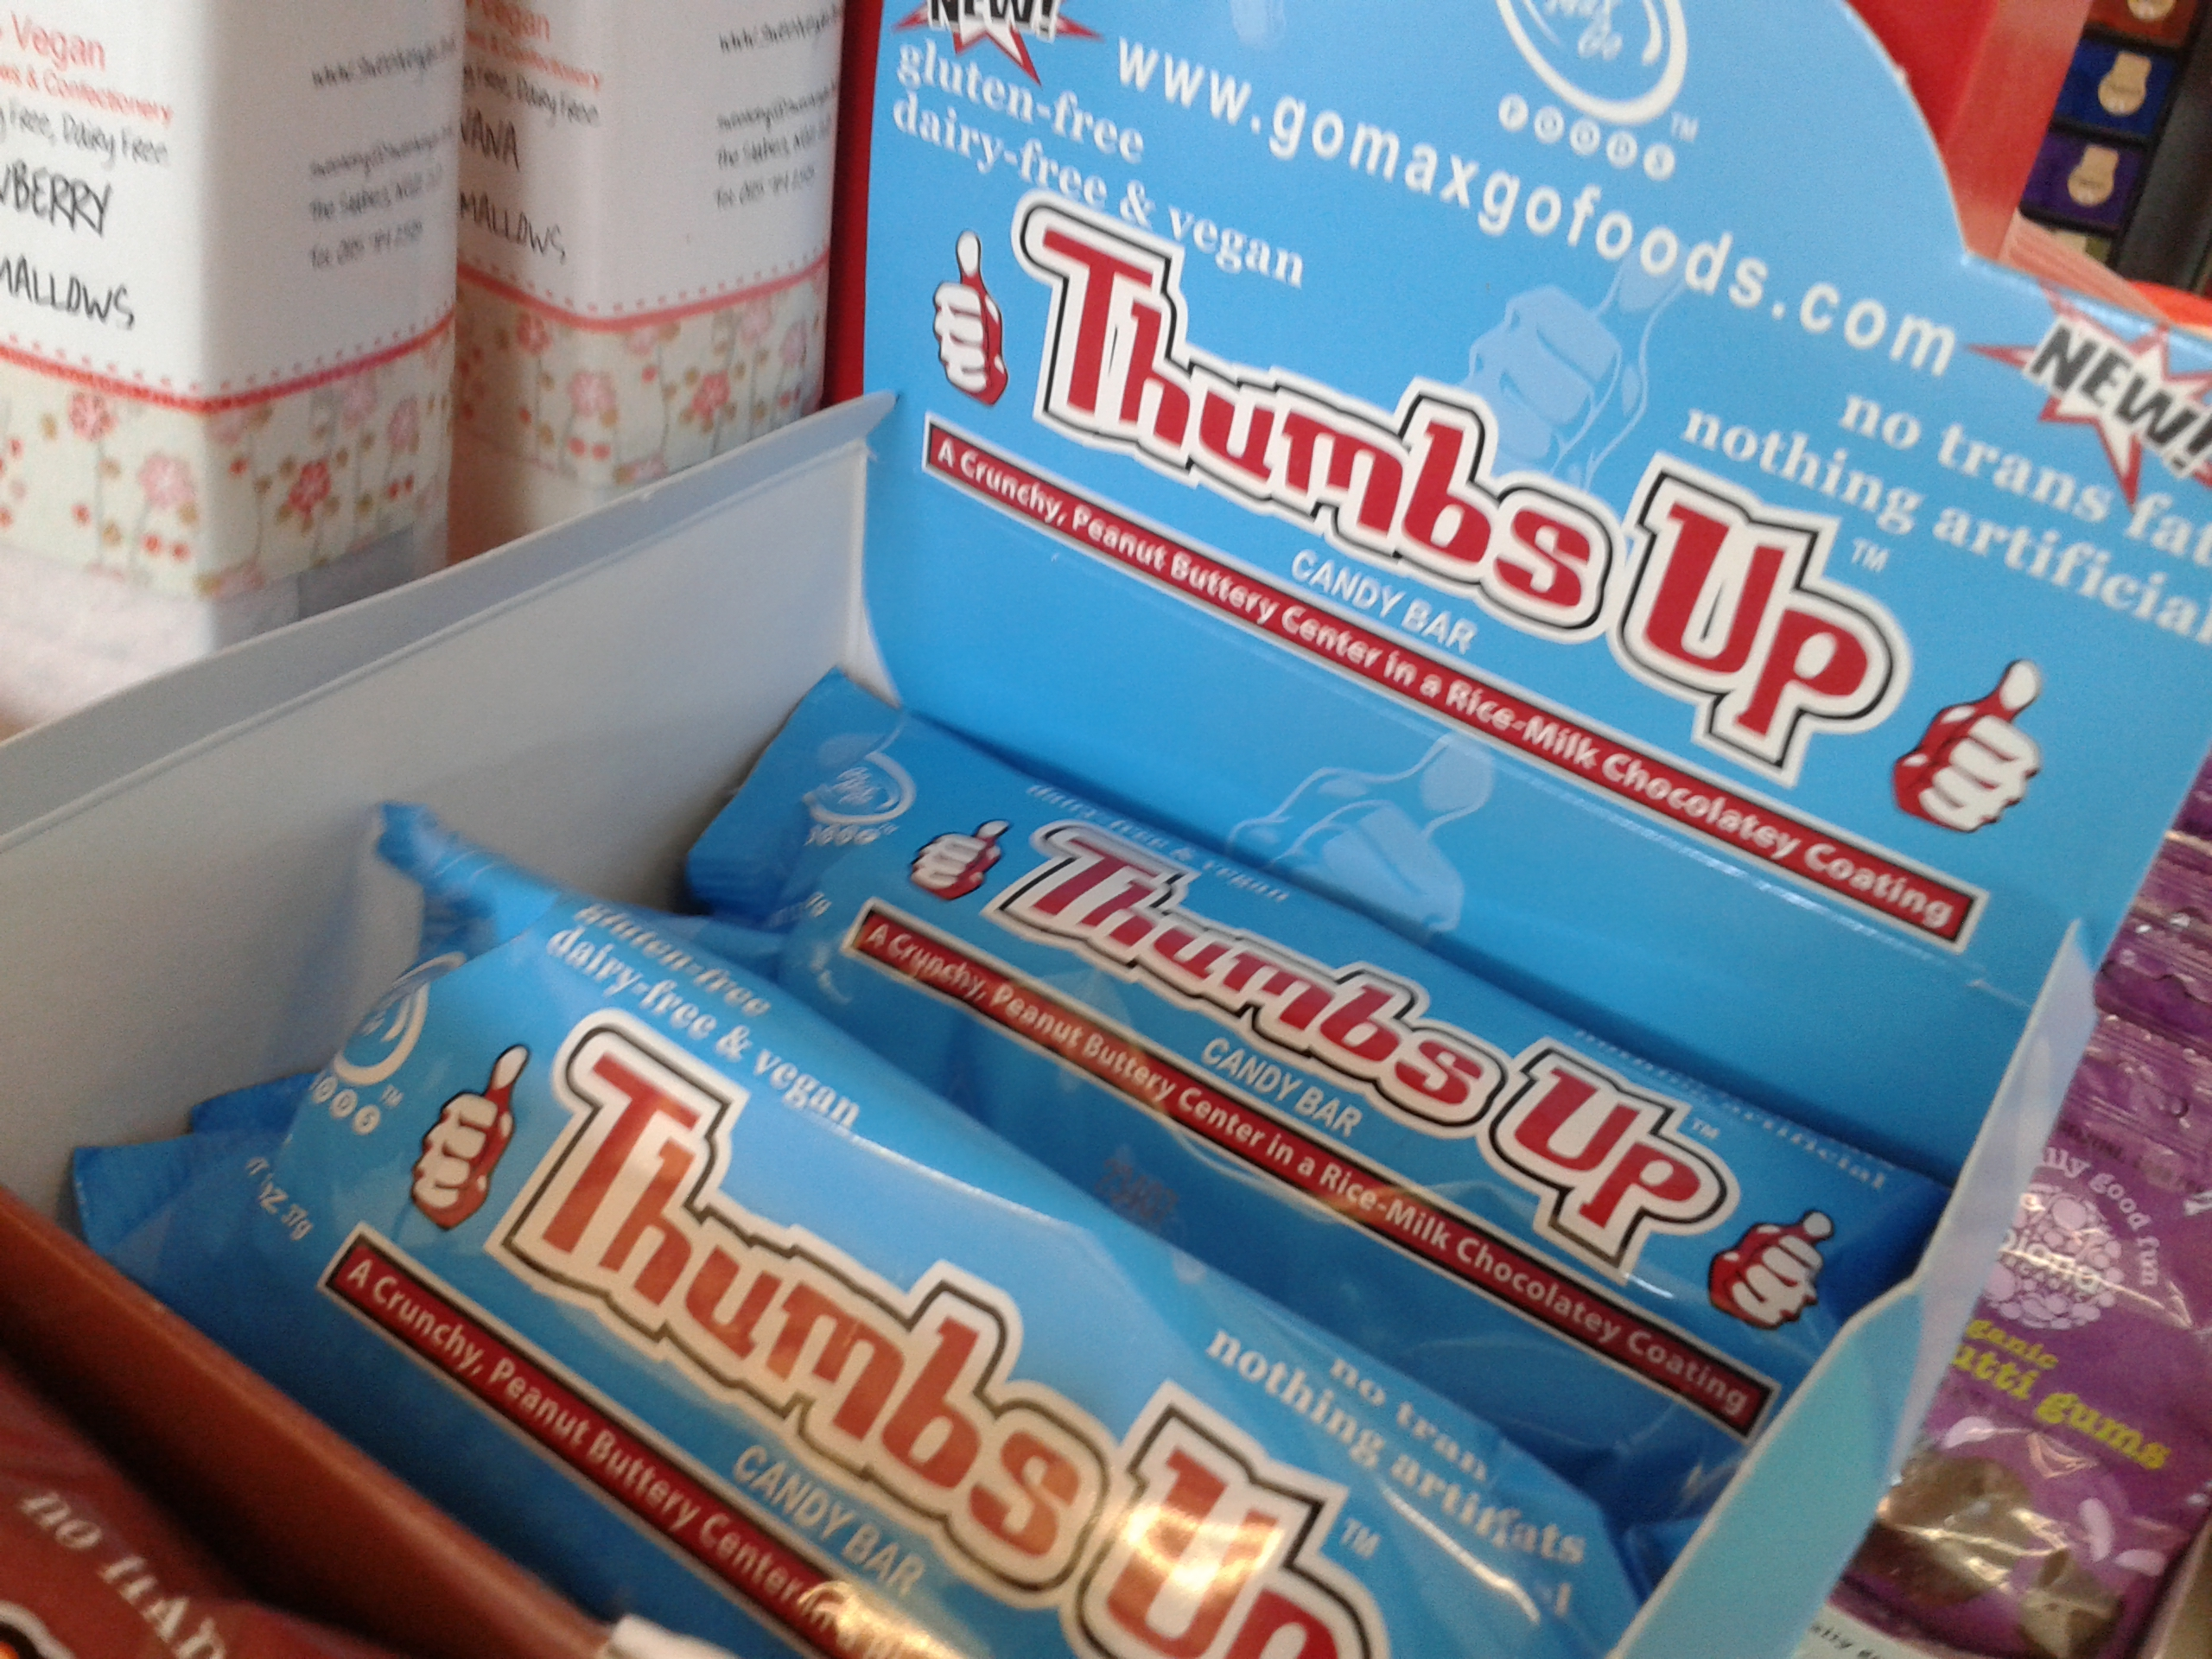 The new Thumbs Up candy bar by Go Max Go Foods